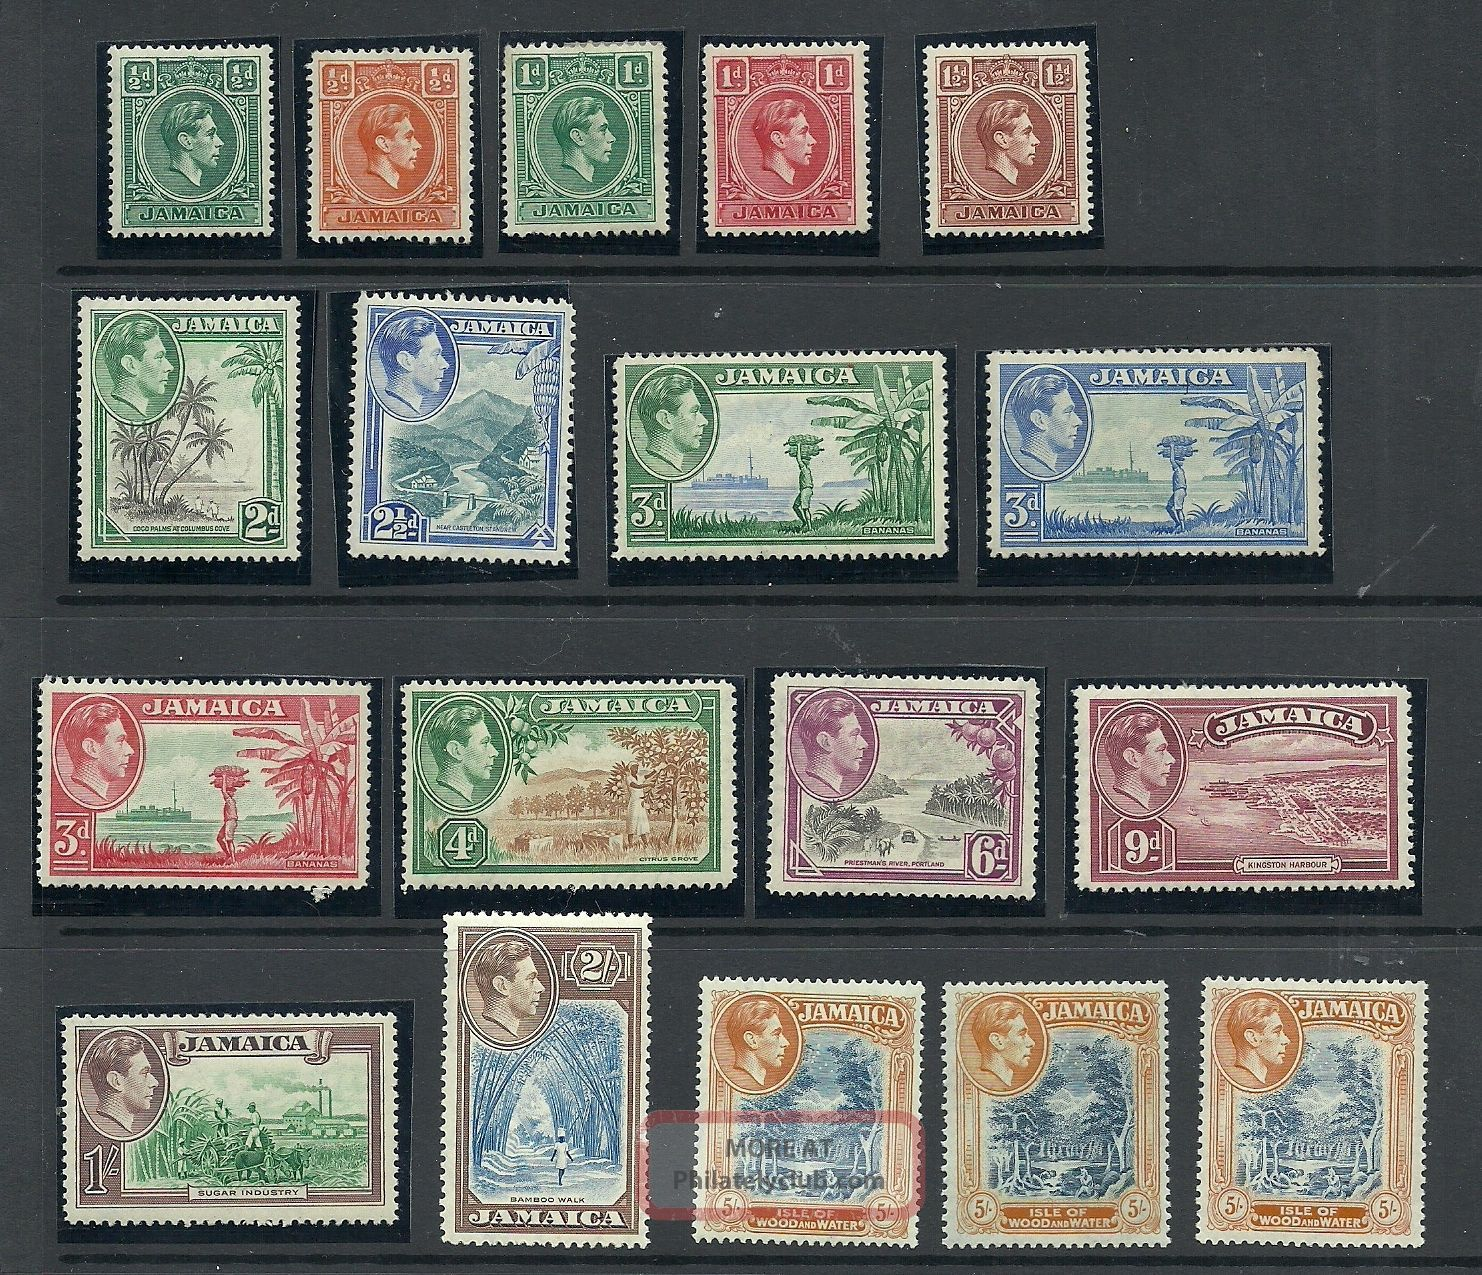 Jamaica Gvi Selection To 5/ - (3 Different) Cat £110+ British Colonies & Territories photo